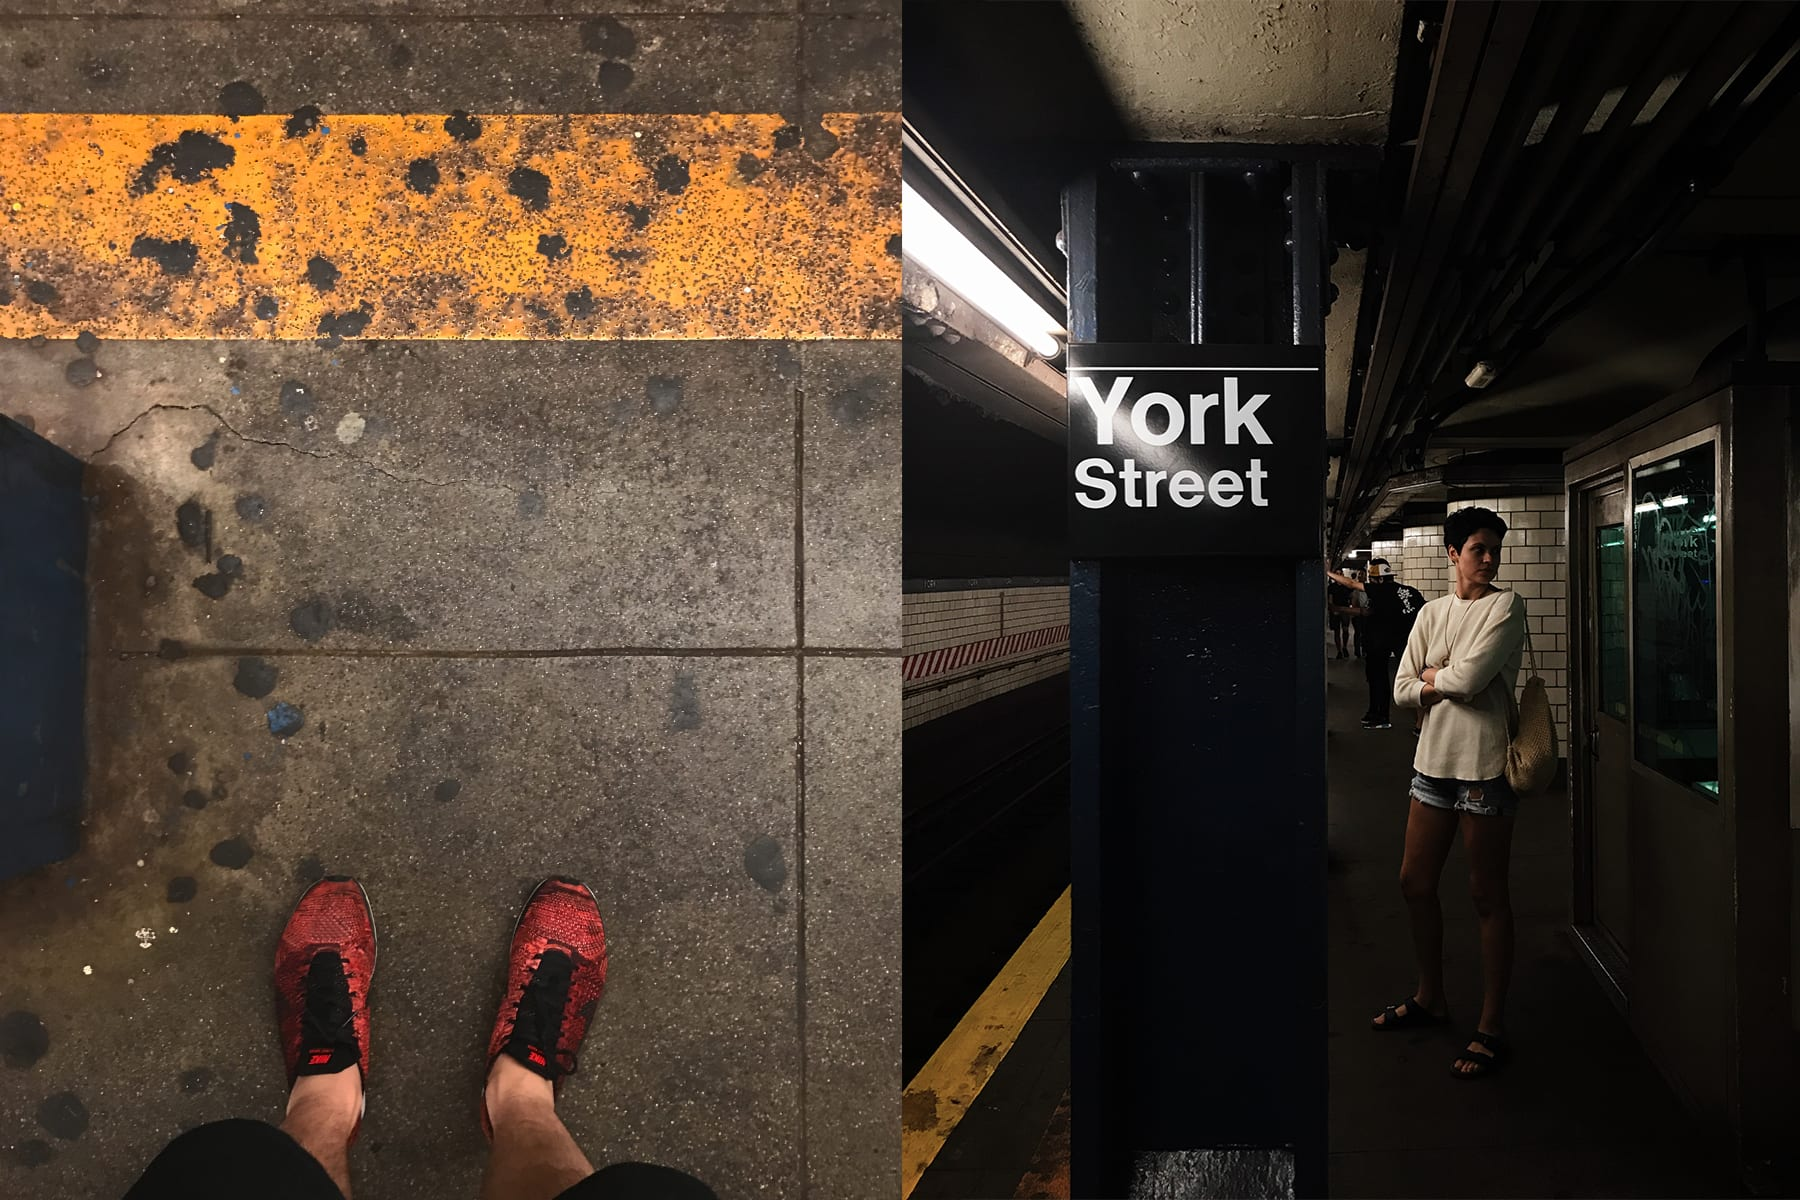 08-NY-journey-subway04-waiting.jpg